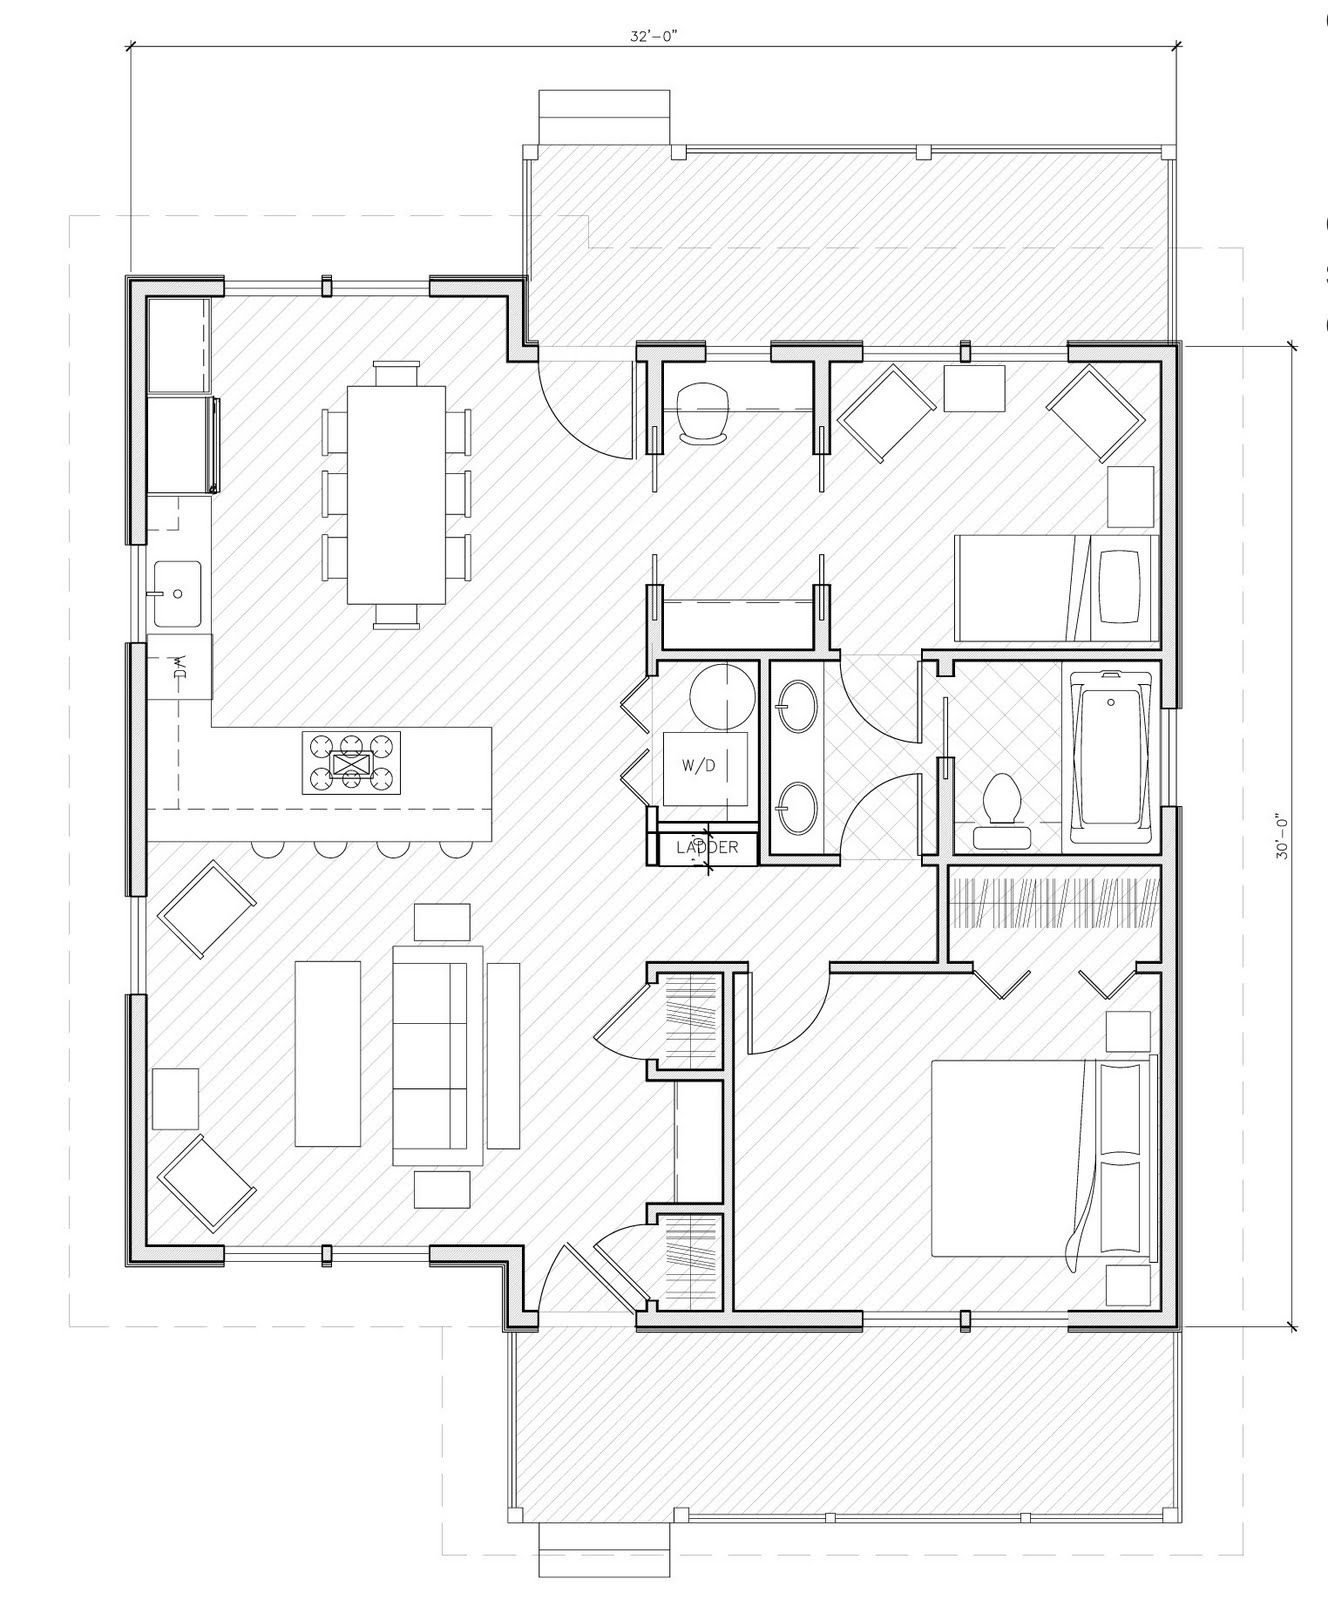 Small House Plans Under 1000 sq ft House Design